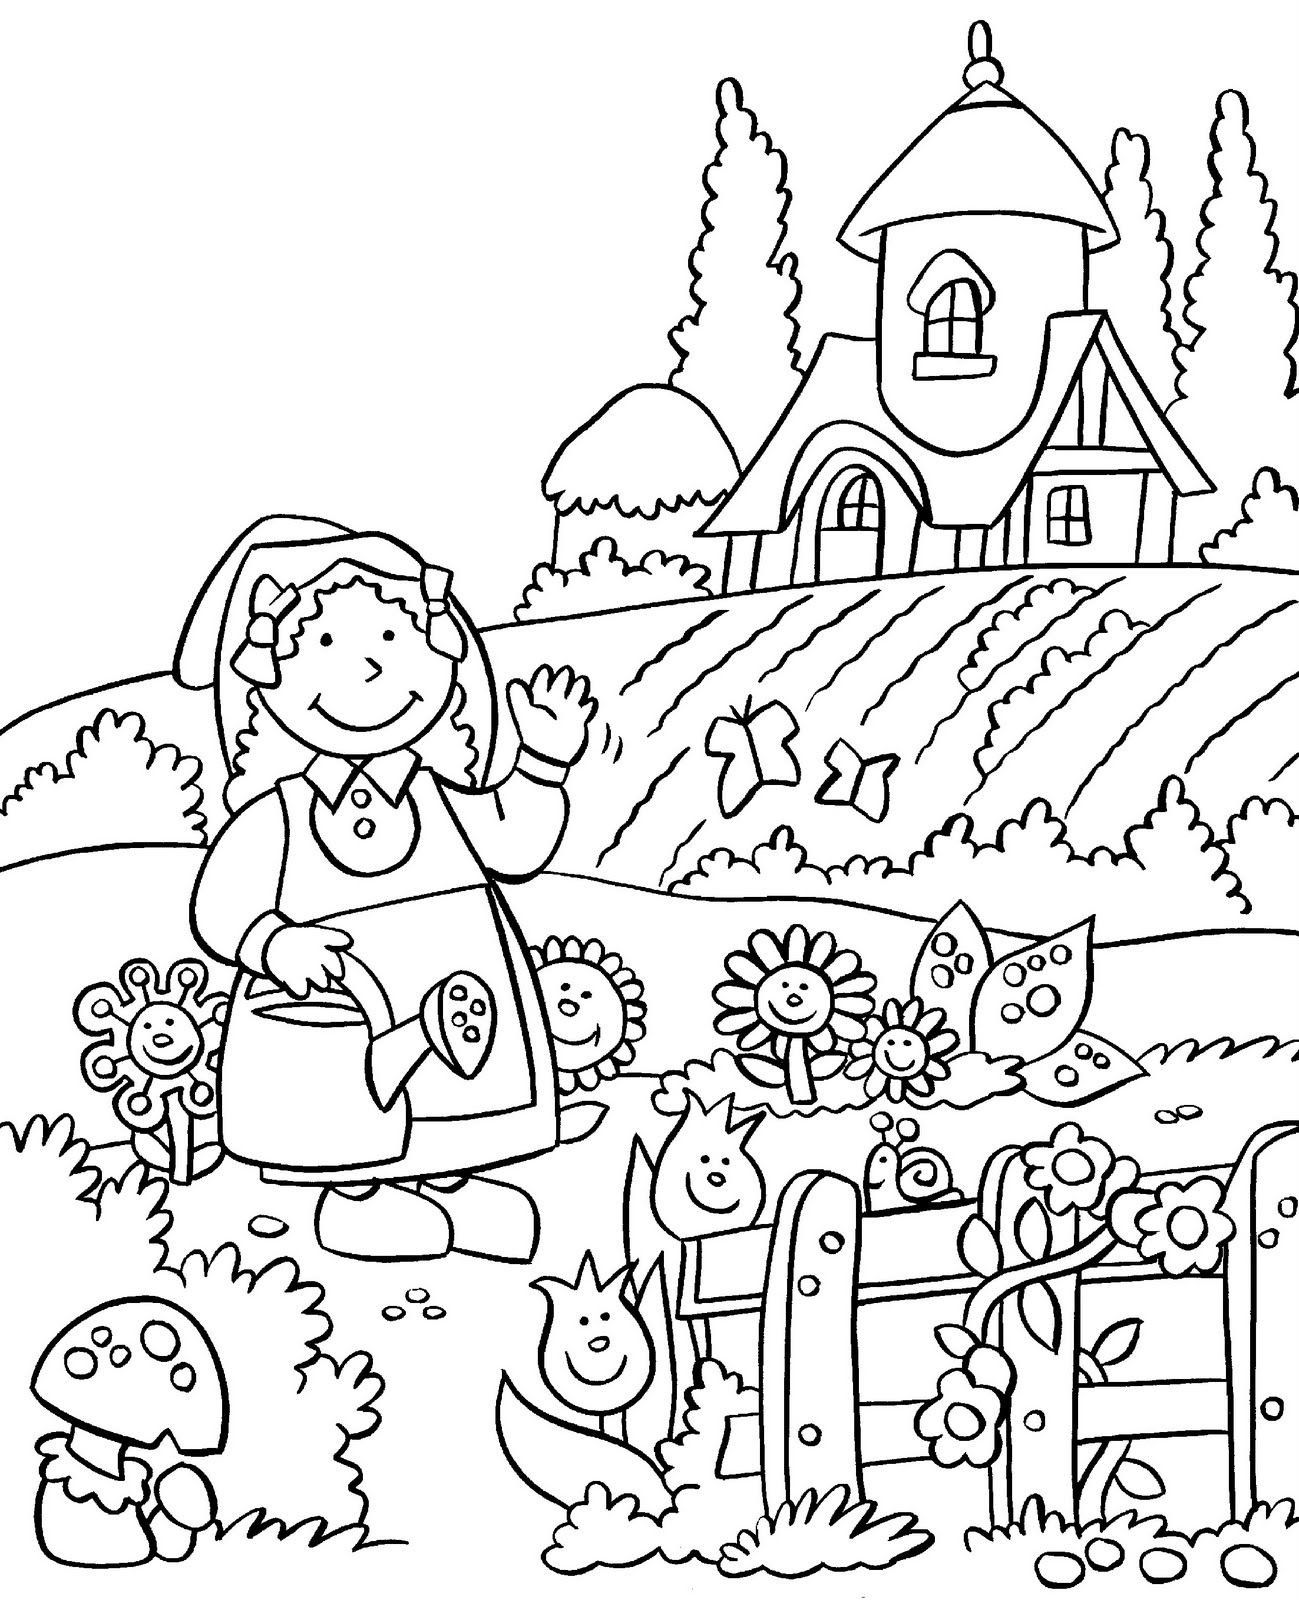 Co coloring book page template - Here Are Two Pages Of The Flowers Mushrooms And Little Insects That You Can Print Out To Trace Over Or Copy Your Own Garden Coloring Page